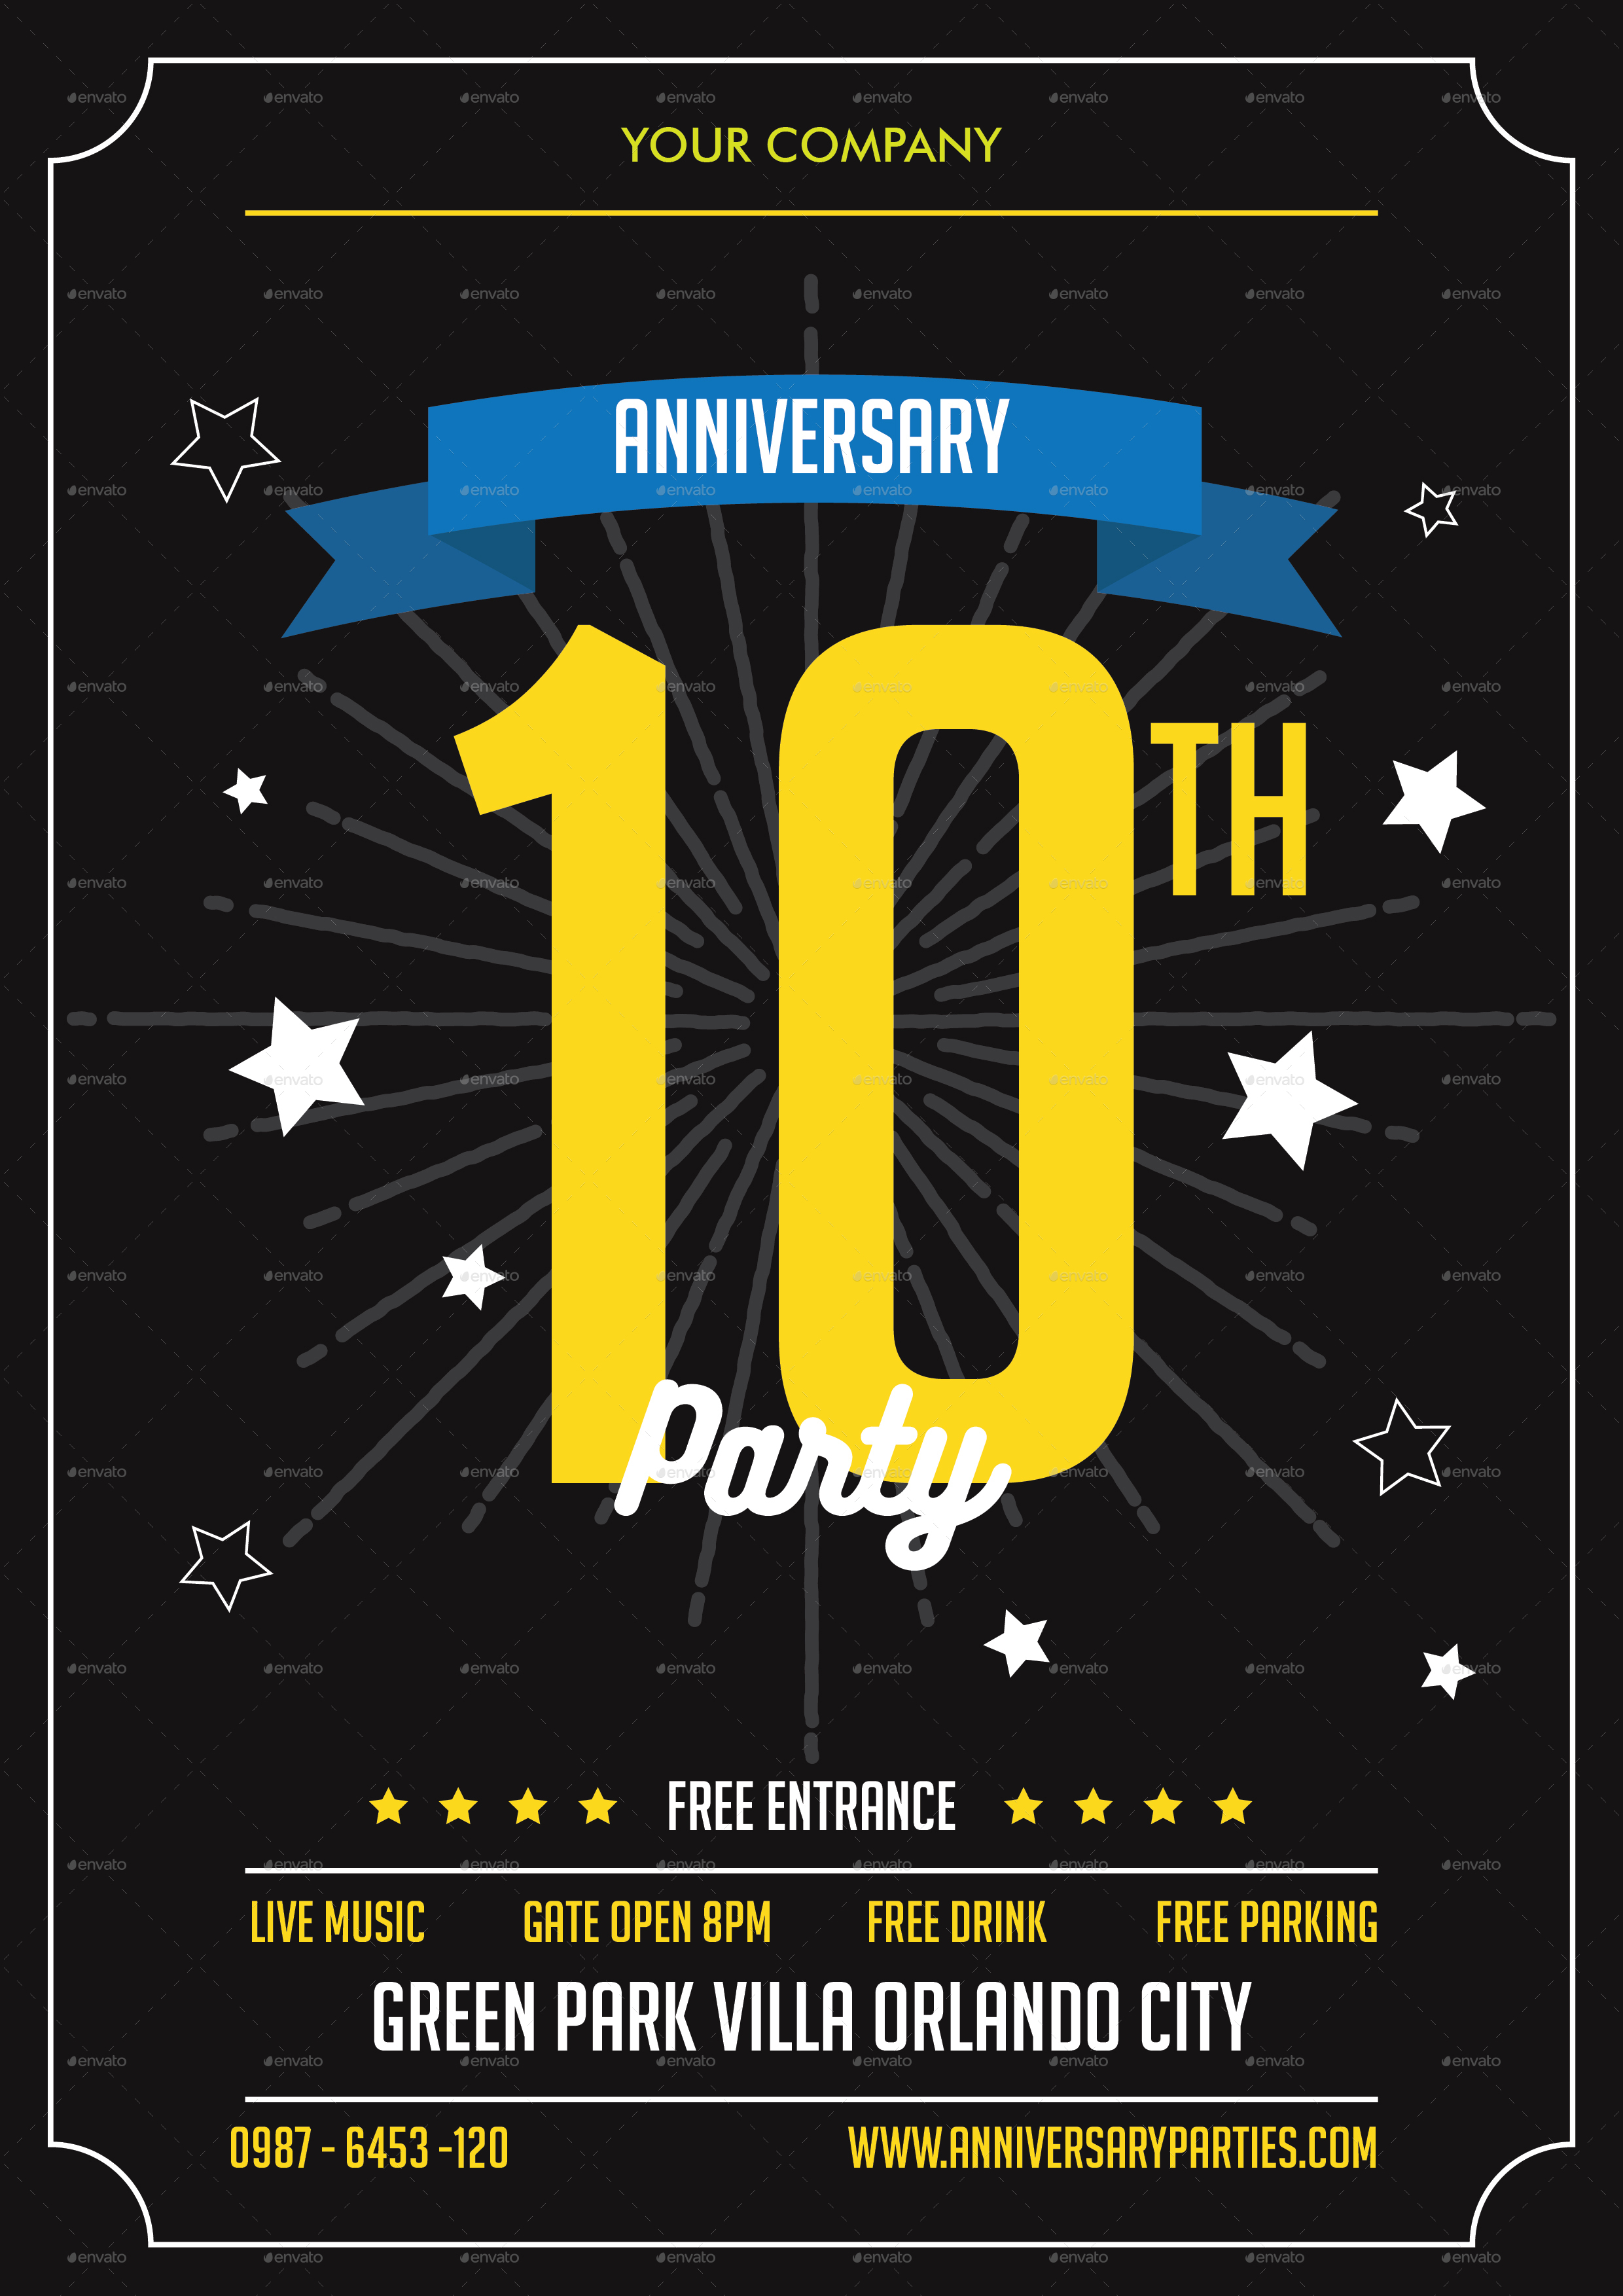 Church Anniversary Flyer.Church Celebration Flyer Template Preview1.  Related For 9+ Church Anniversary Flyer. 3+ Party Invitation. 8+ Party  Invites